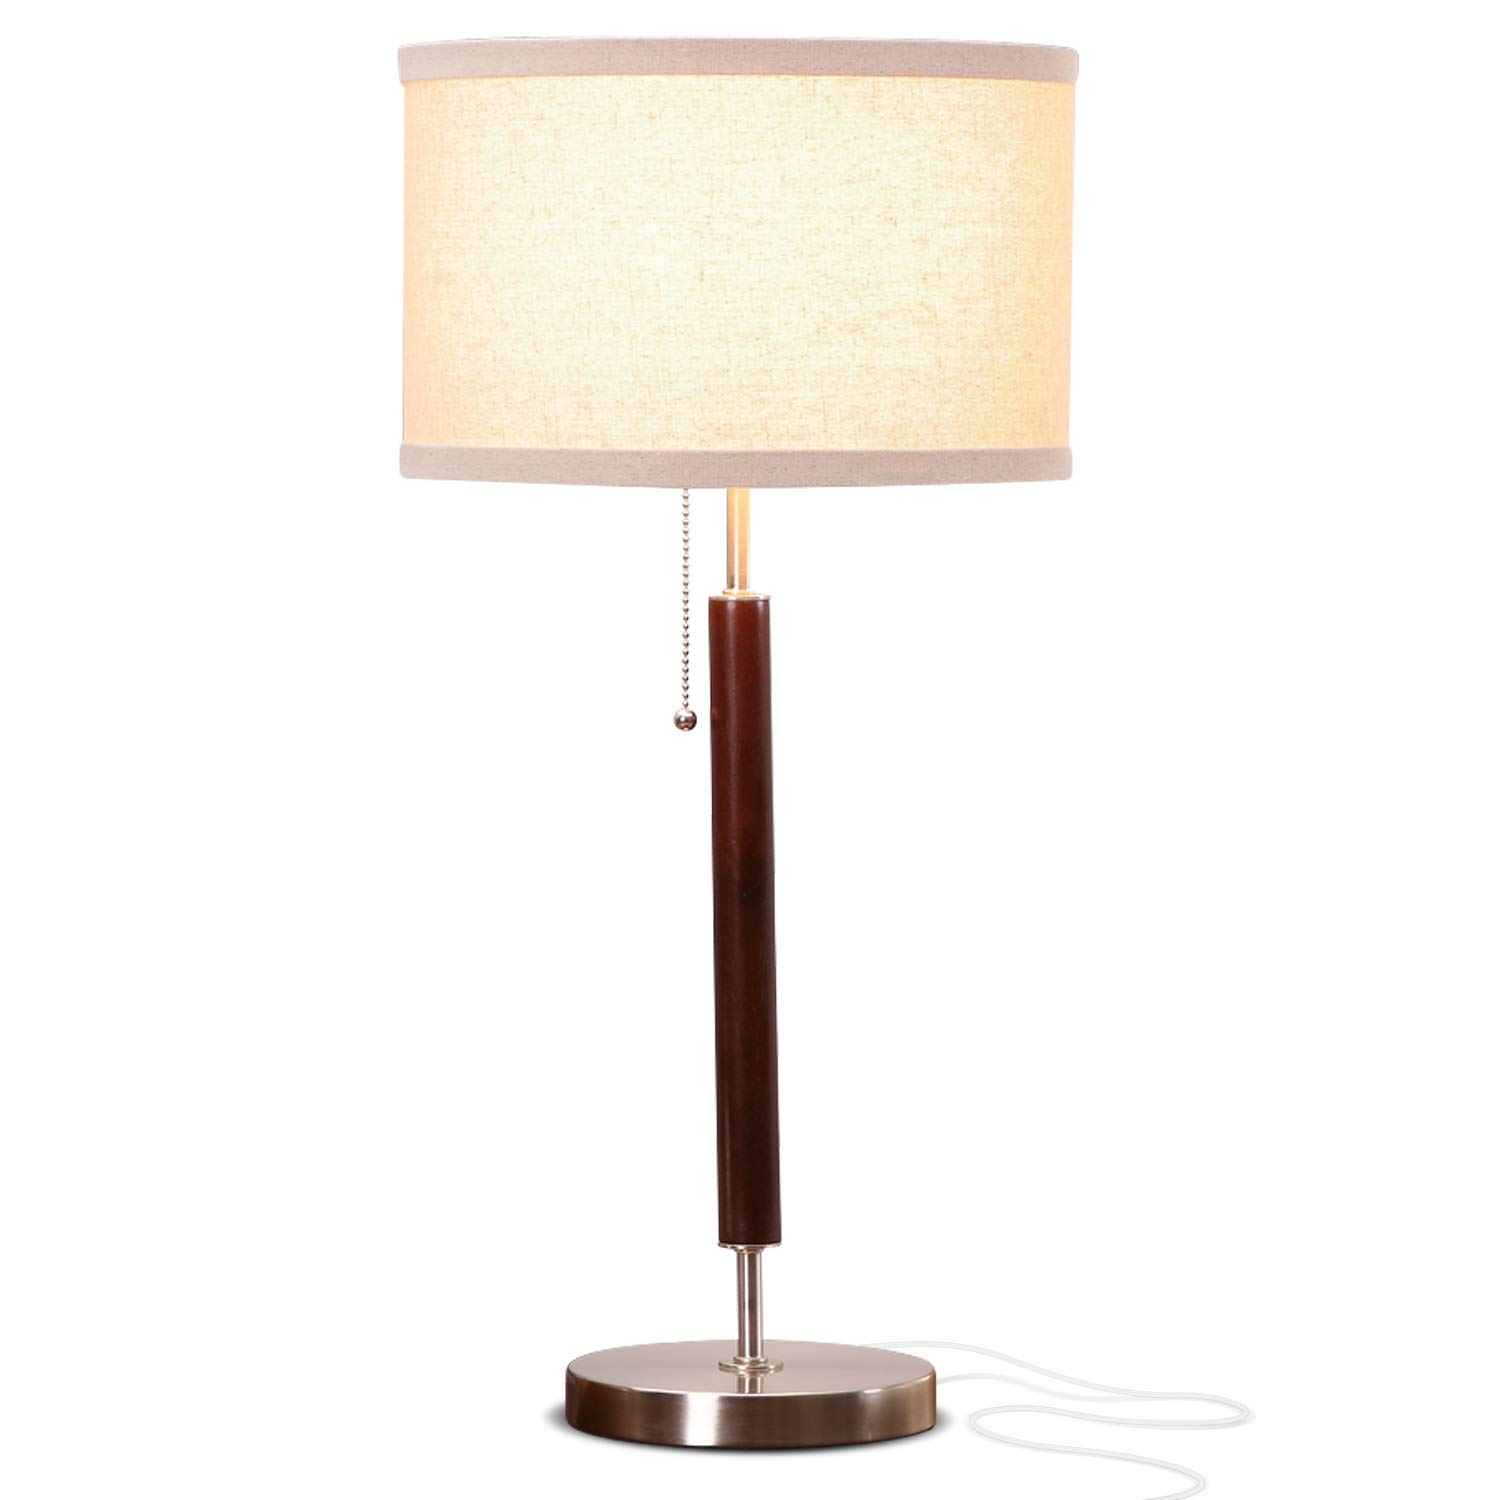 Delicieux Brightech Carter Nightstand U0026 Side Table Lamp   Contemporary Bedroom Lamp  For Soft Bedside Light   Stainless Steel U0026 Wood Finish     Amazon.com